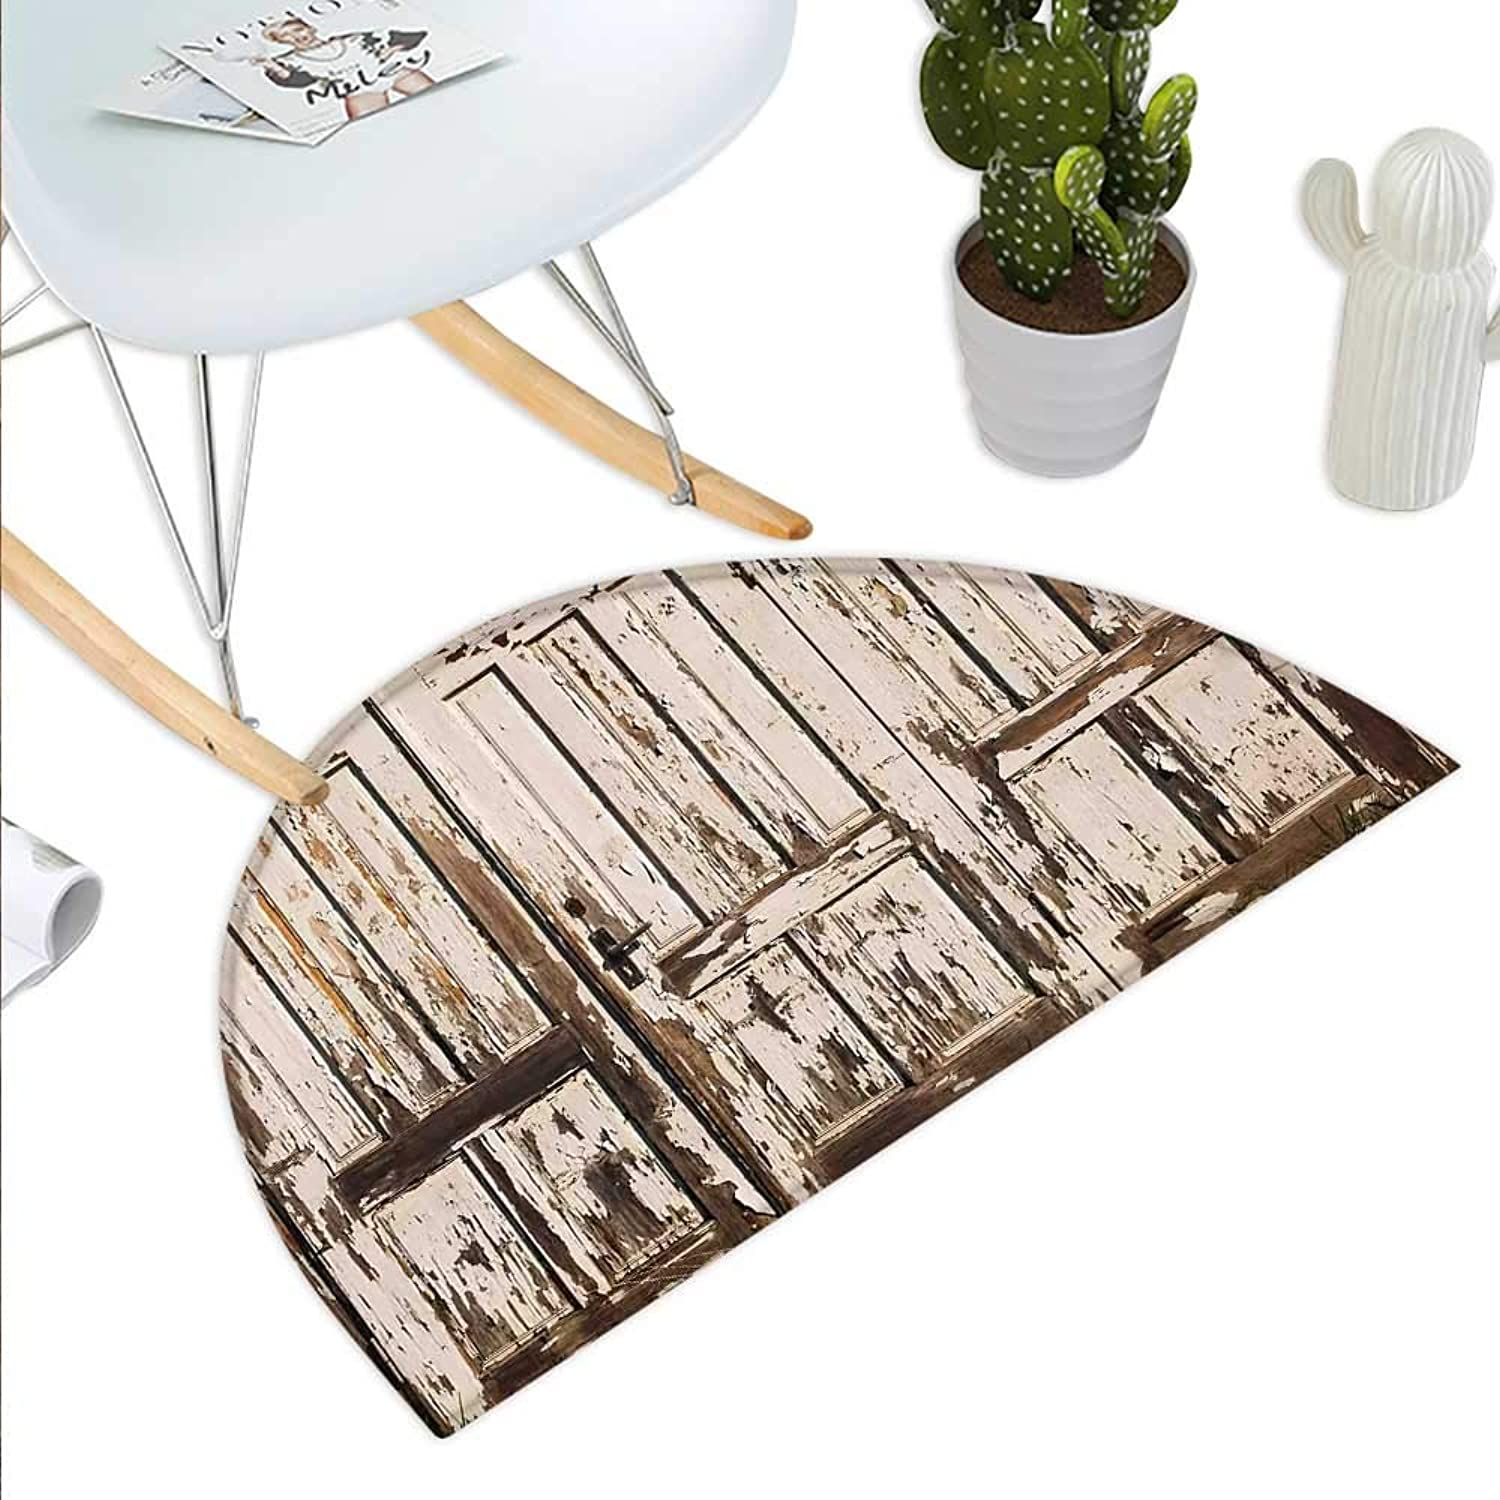 Rustic Semicircle Doormat Vintage House Entrance with greenical Old Planks Distressed Rustic Hardwood Design Halfmoon doormats H 43.3  xD 64.9  Brown White